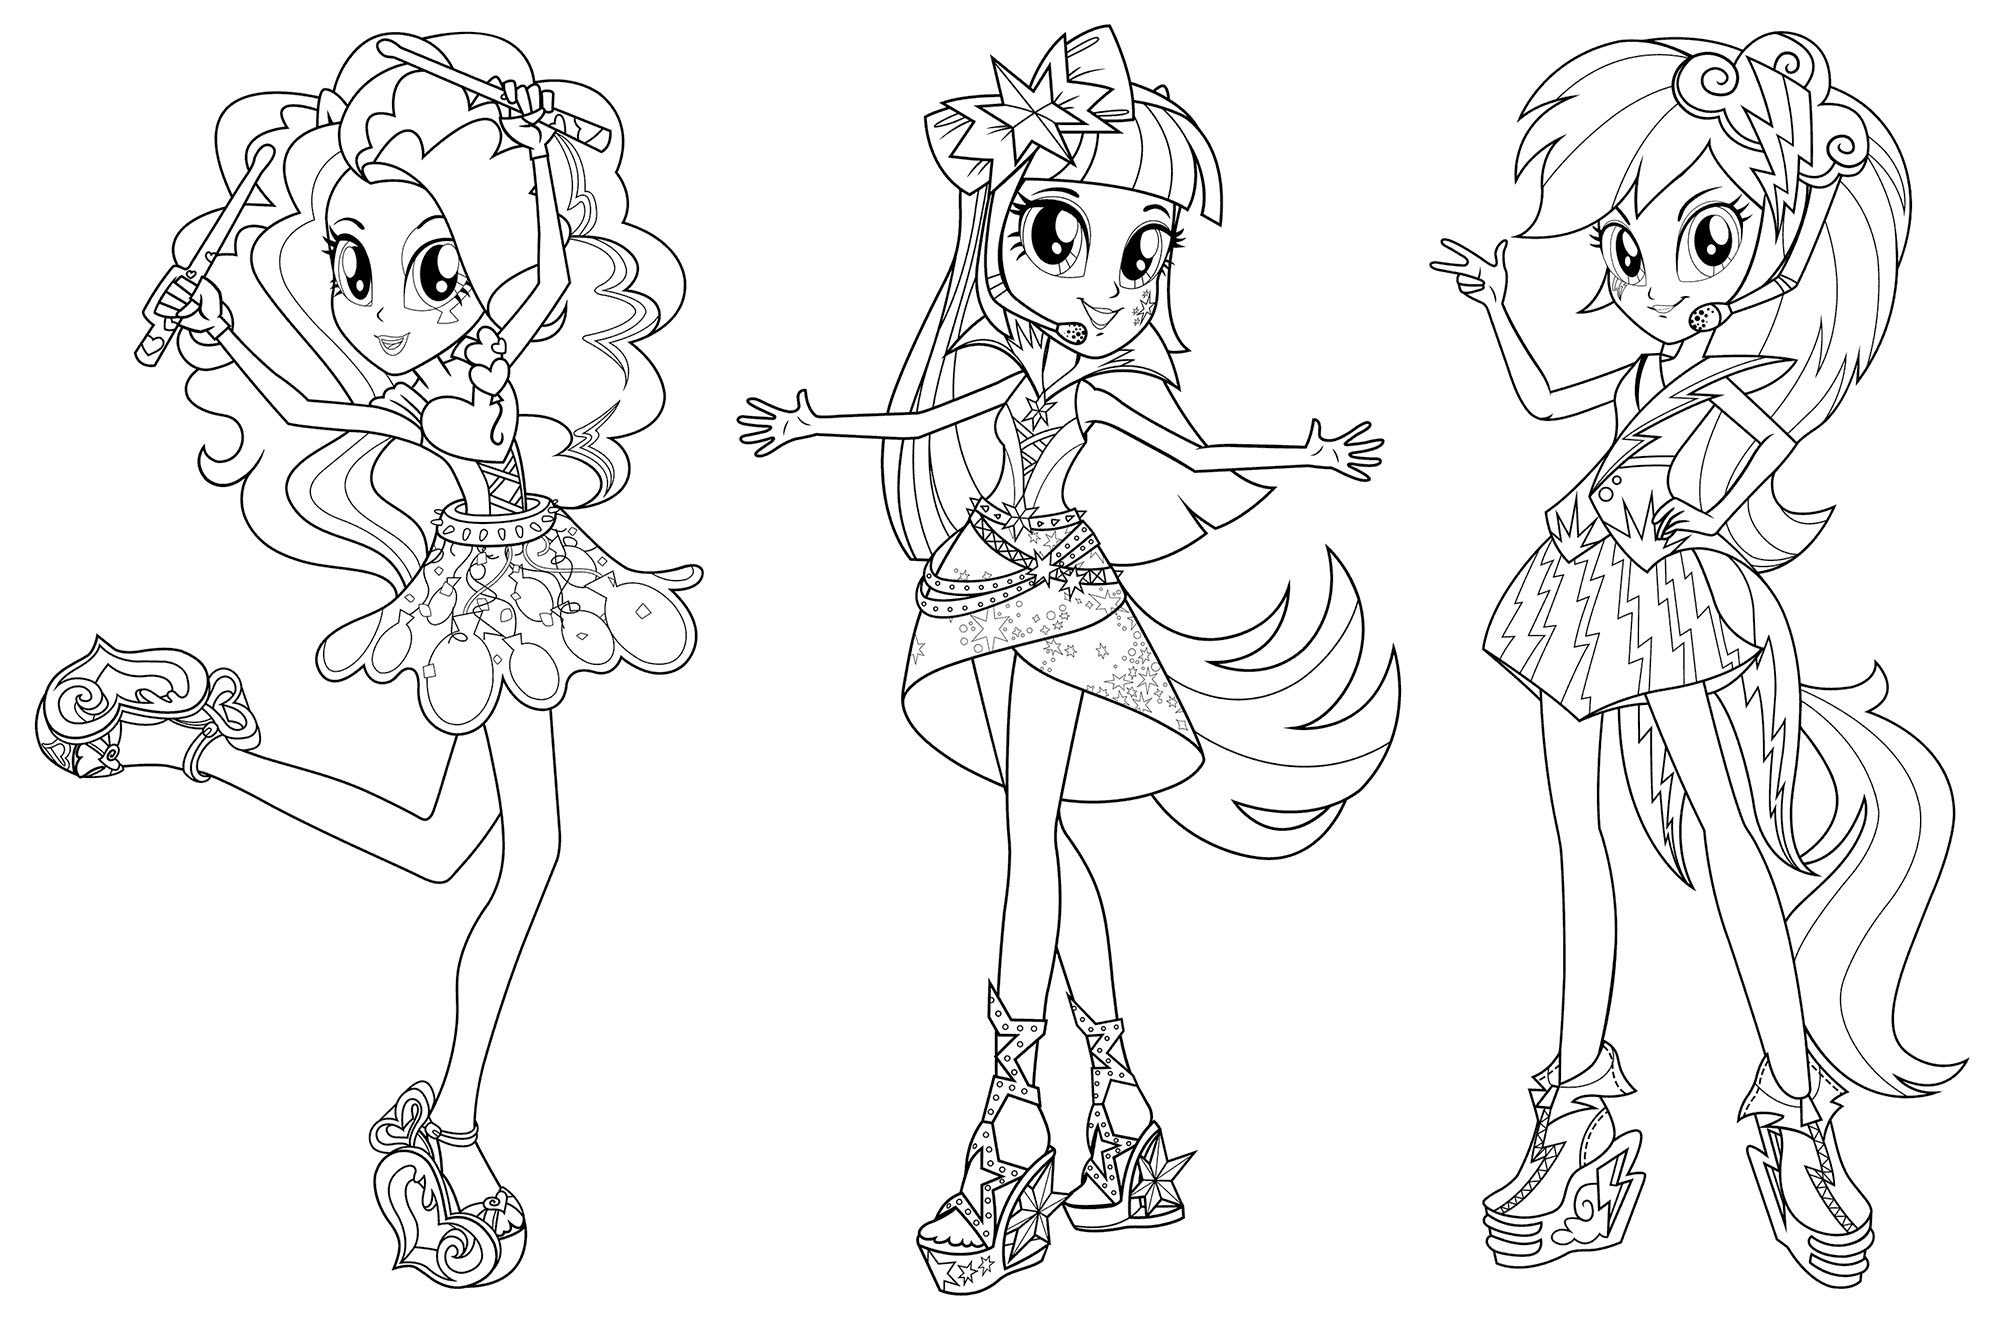 Coloring Pages My Little Pony Equestria Girls Printable Dengan